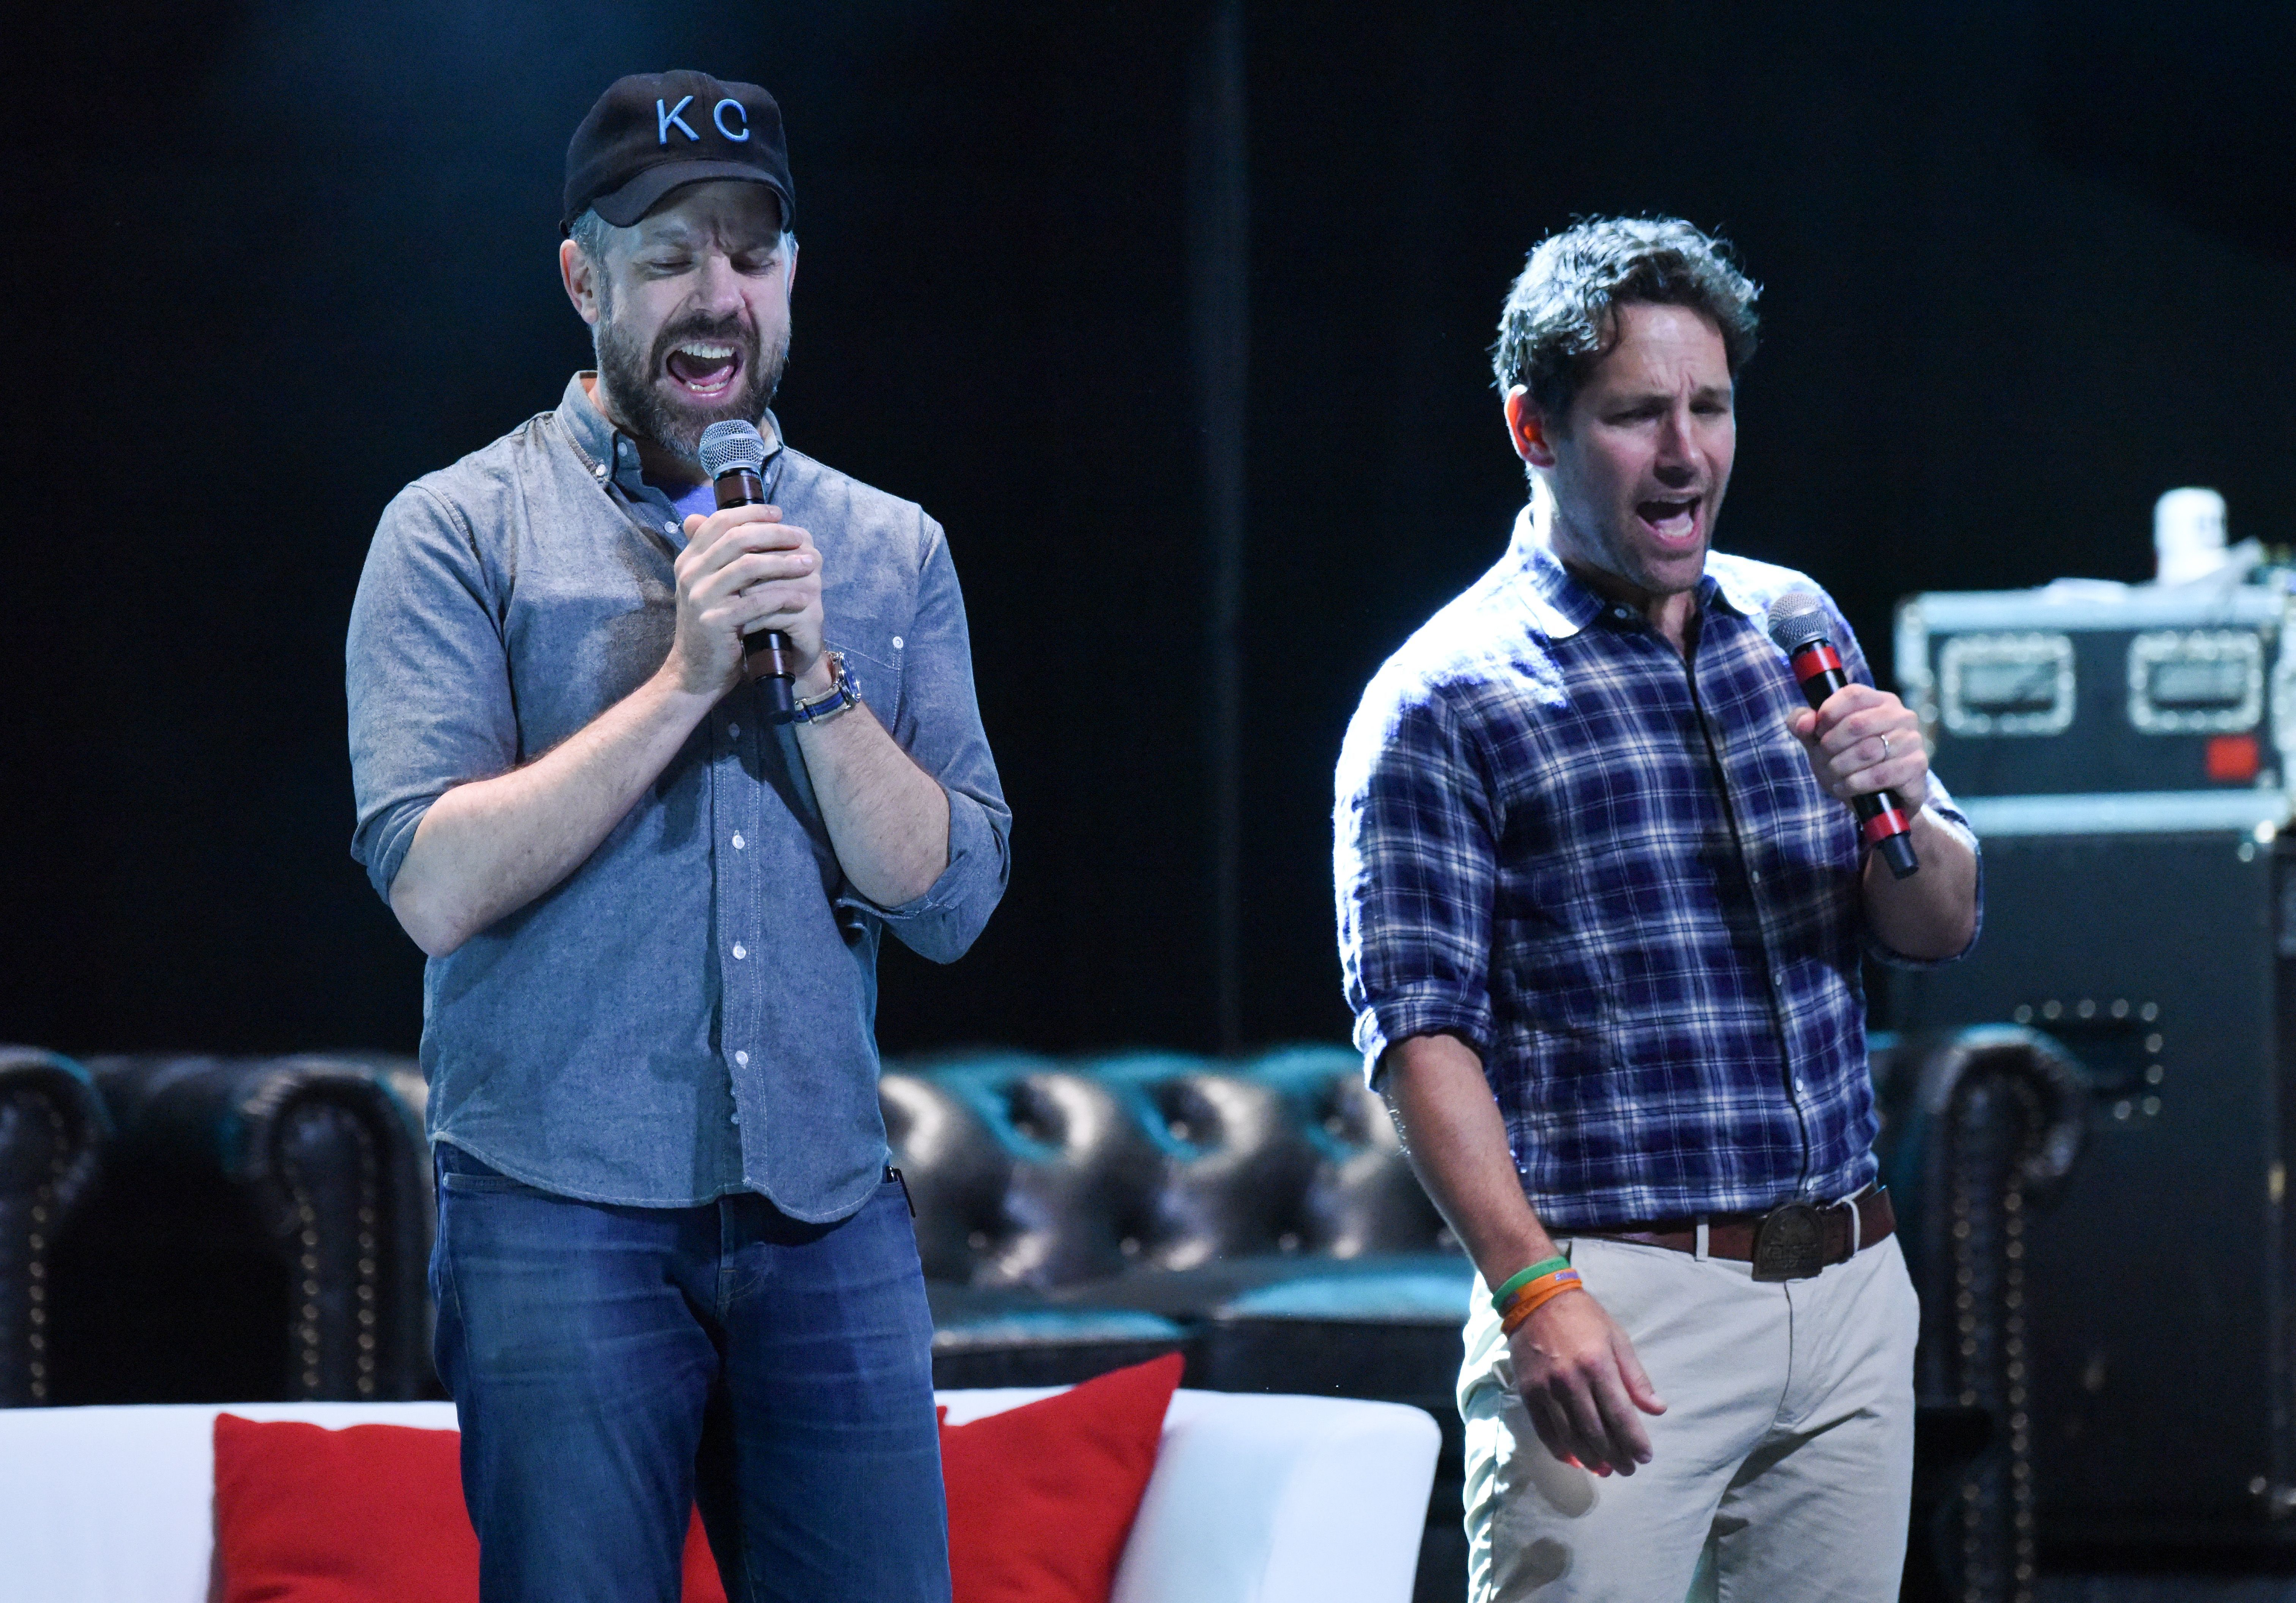 Jason Sudeikis and Paul Rudd attend the Big Slick Party and Auction in Kansas City on June 24, 2017.